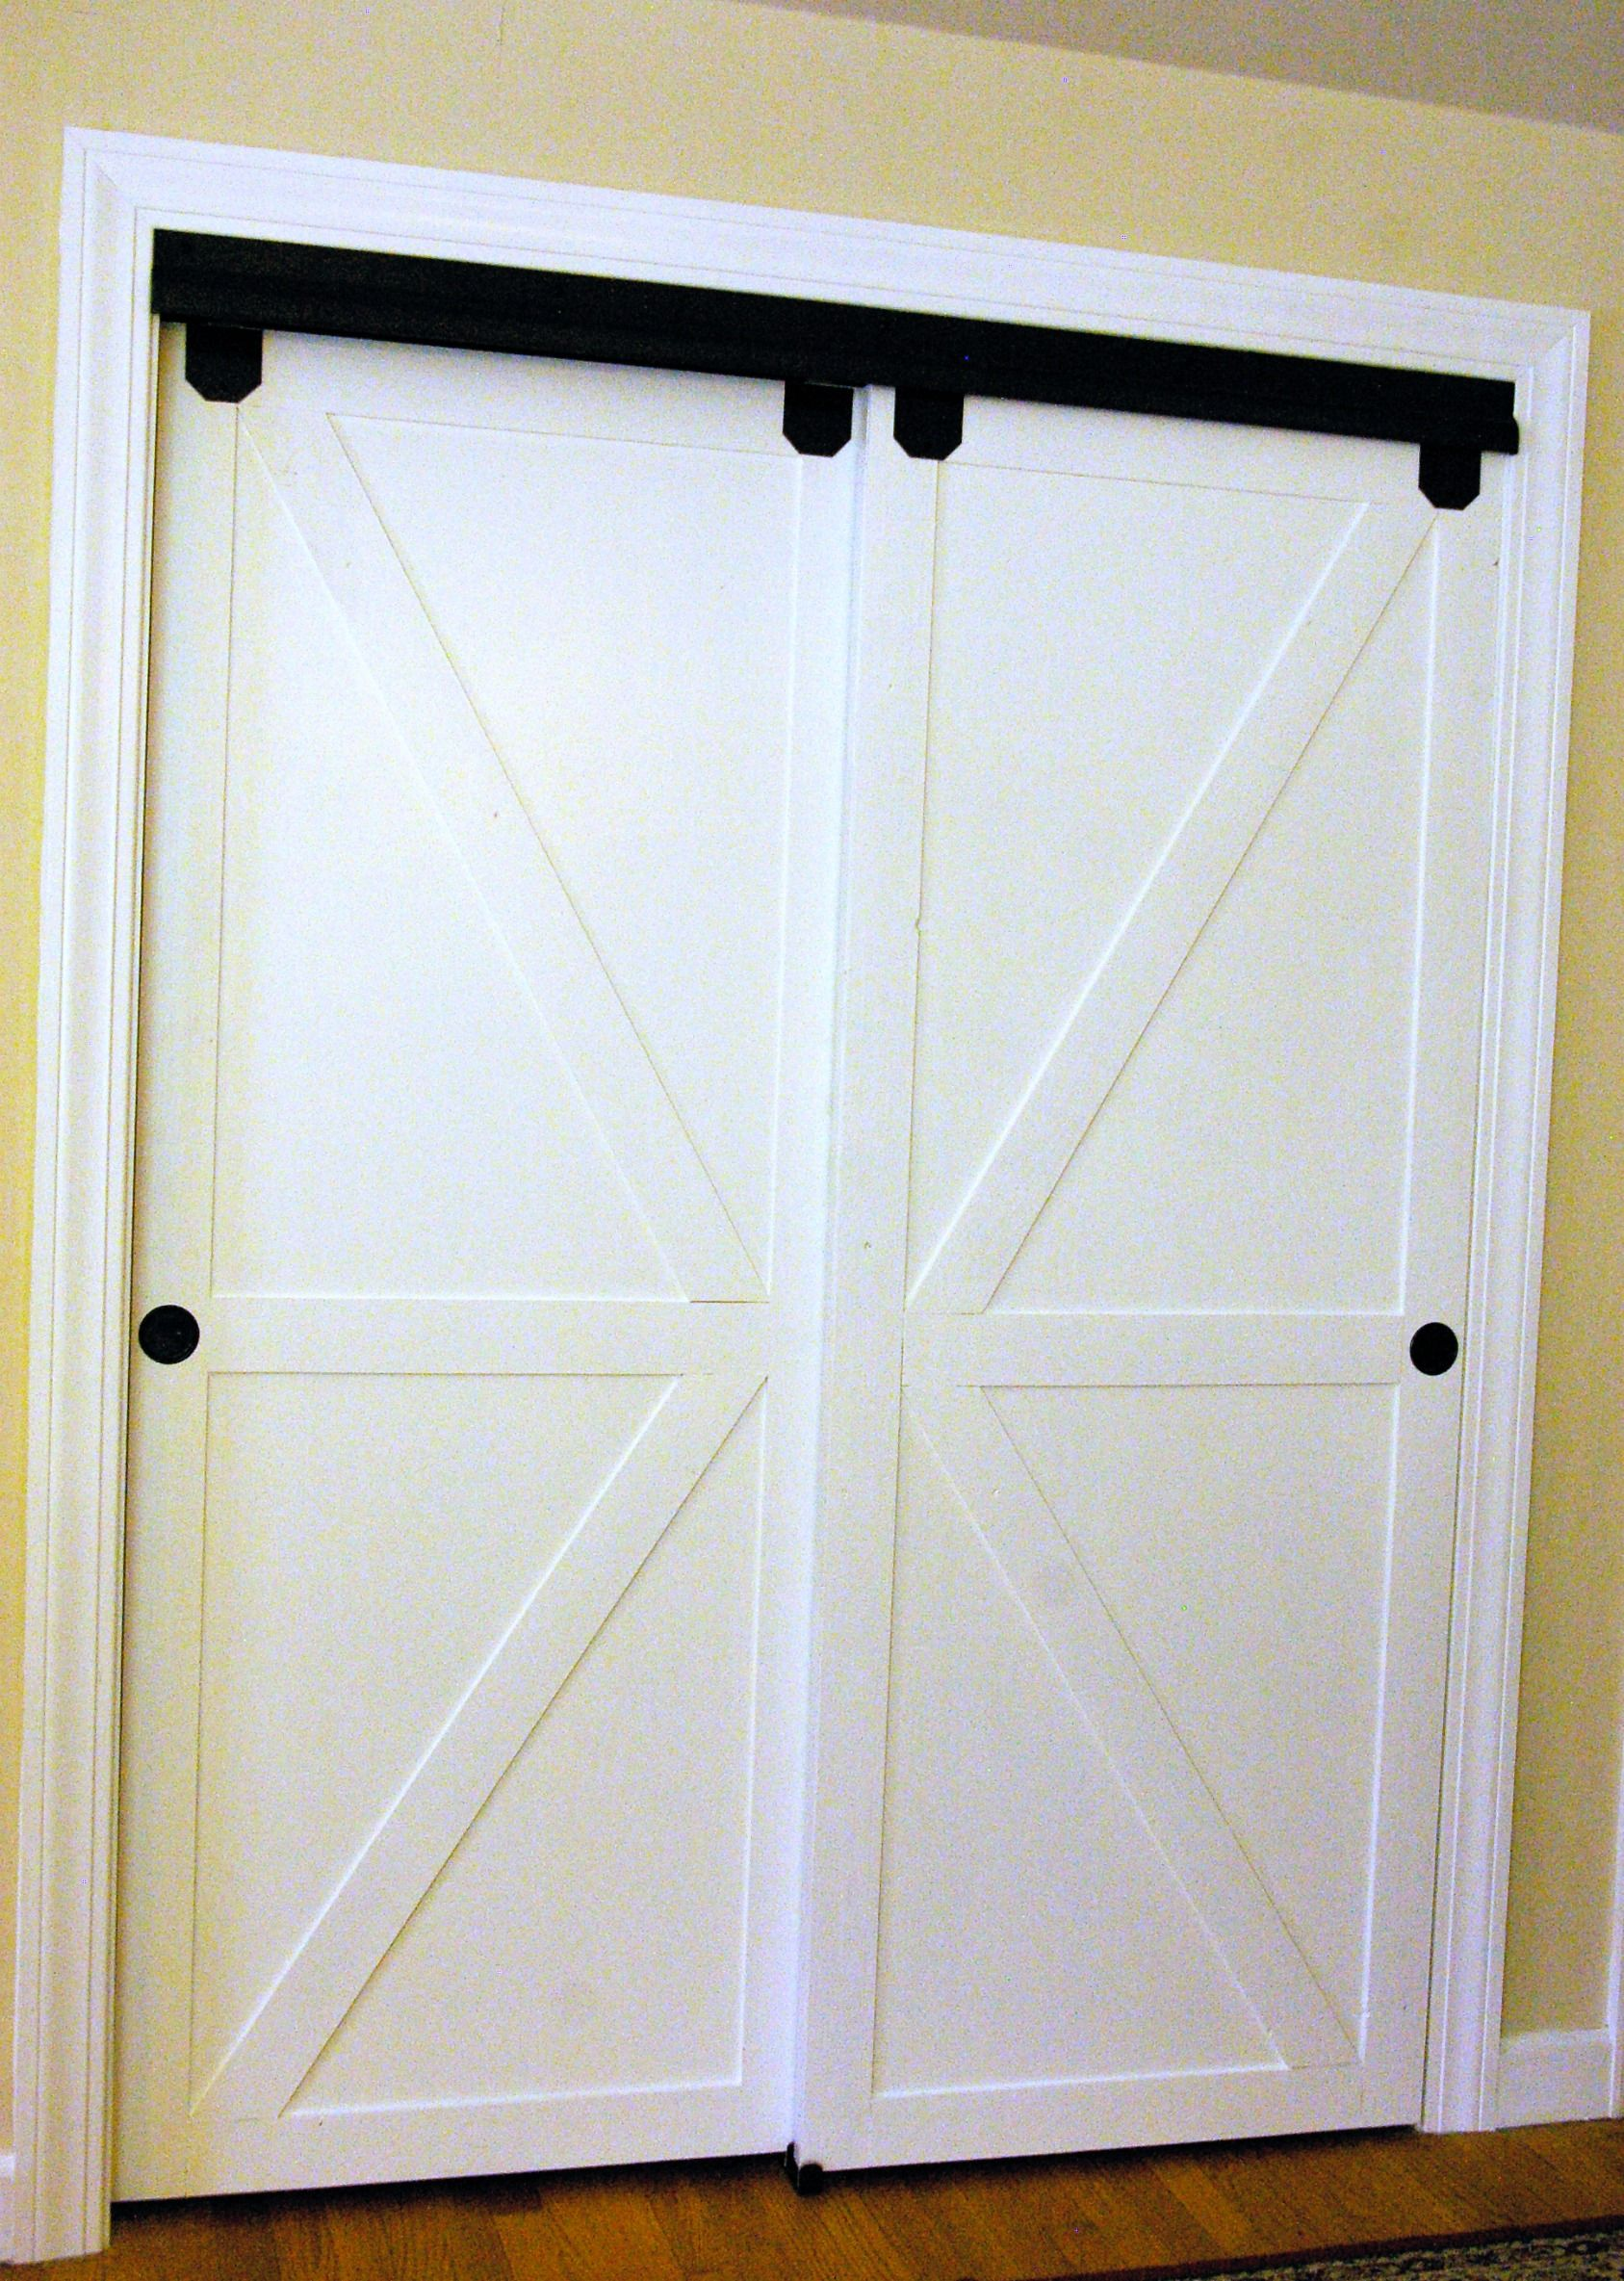 closet doors. I Love What She Did To Her Closet Doors Make Them Blend In With The Room #slidingclosetdoors